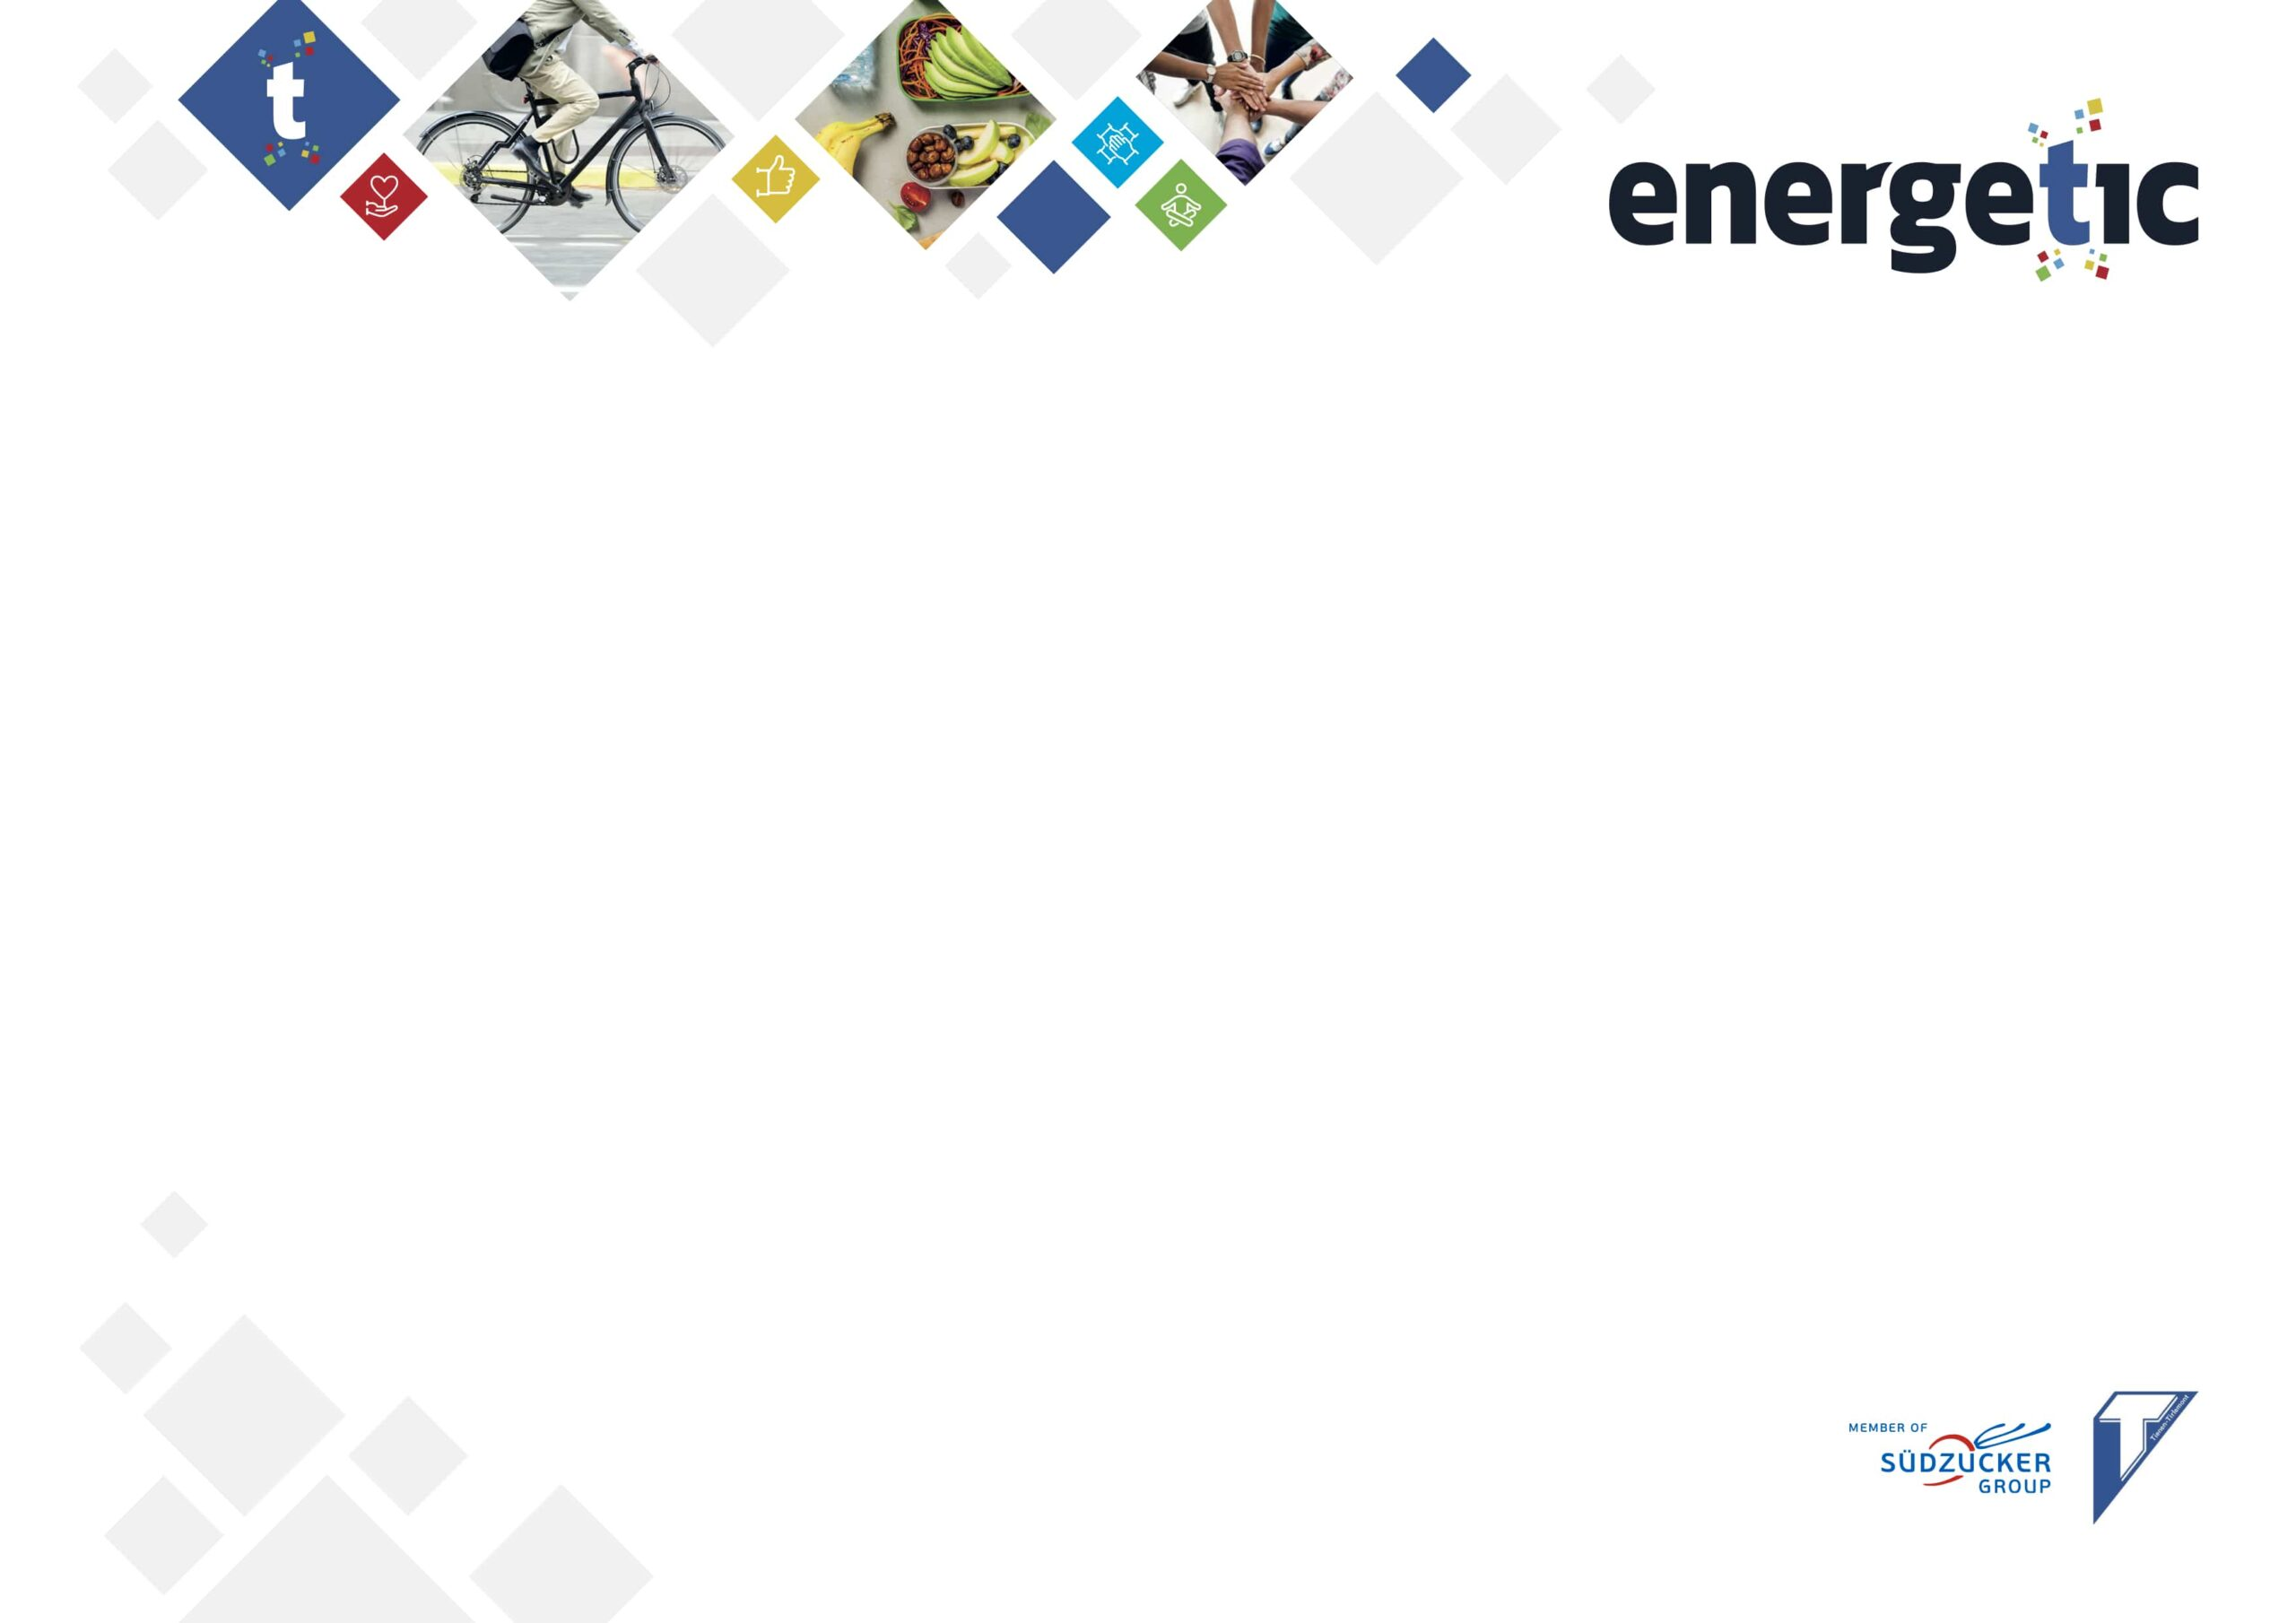 WR_ENERGETIC_PPT_A4 Landscape